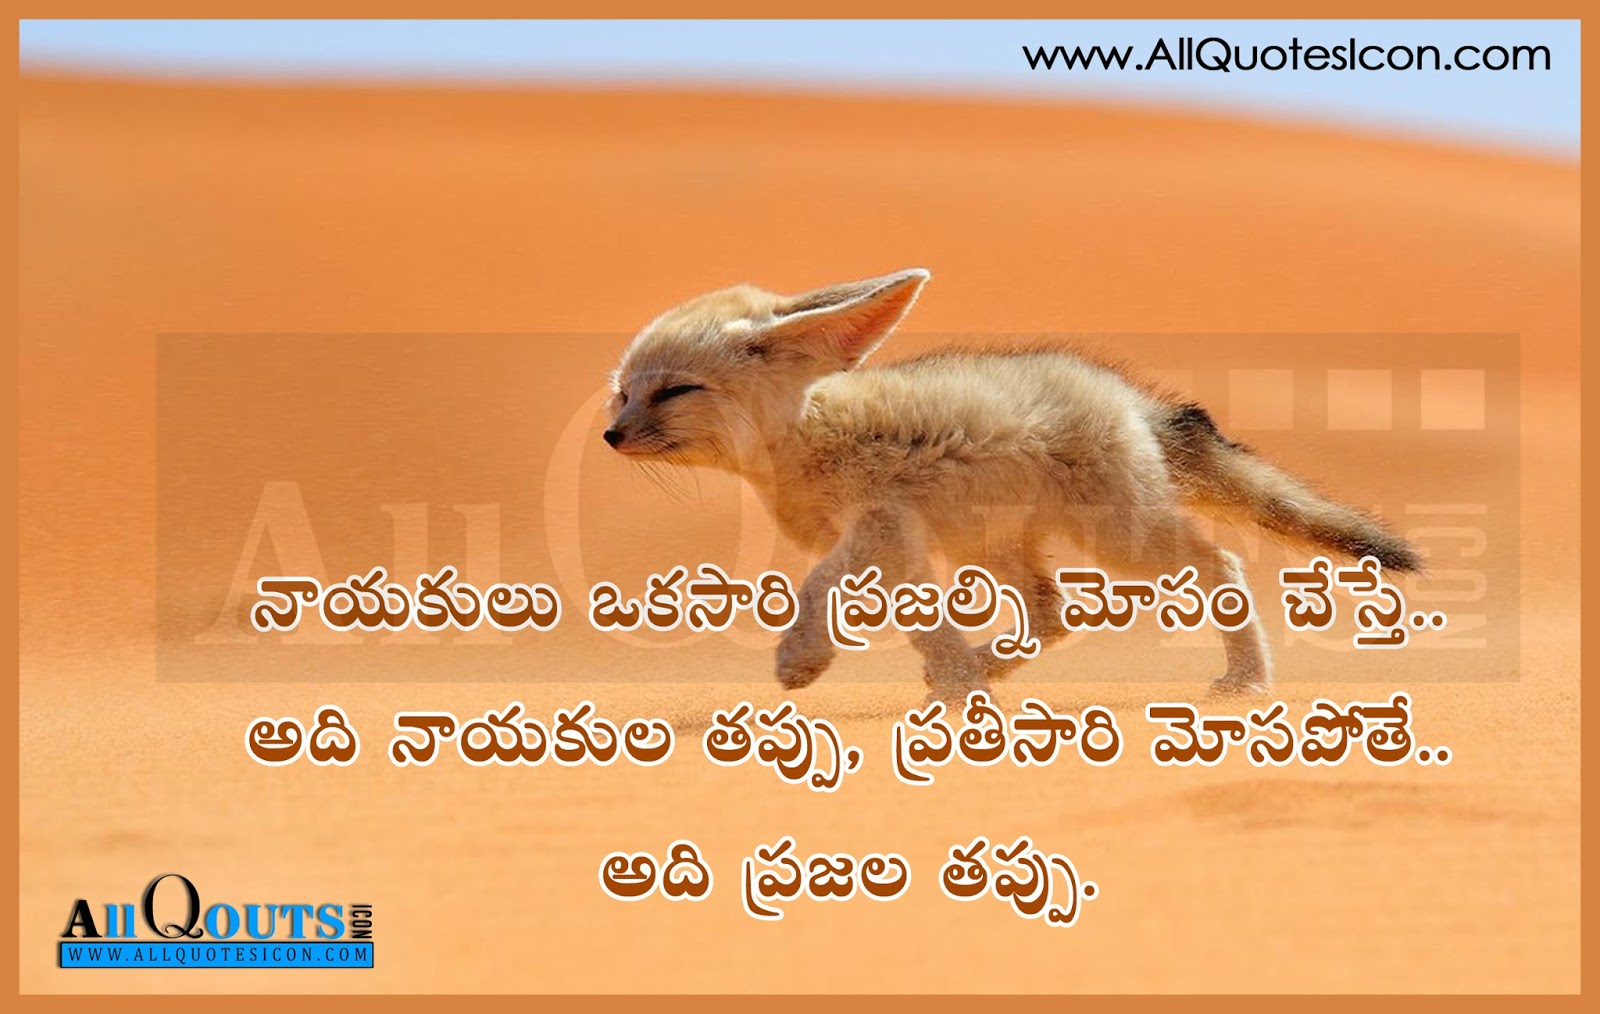 Leadership Quotes And Sayings In Telugu Hd Wallpapers Top